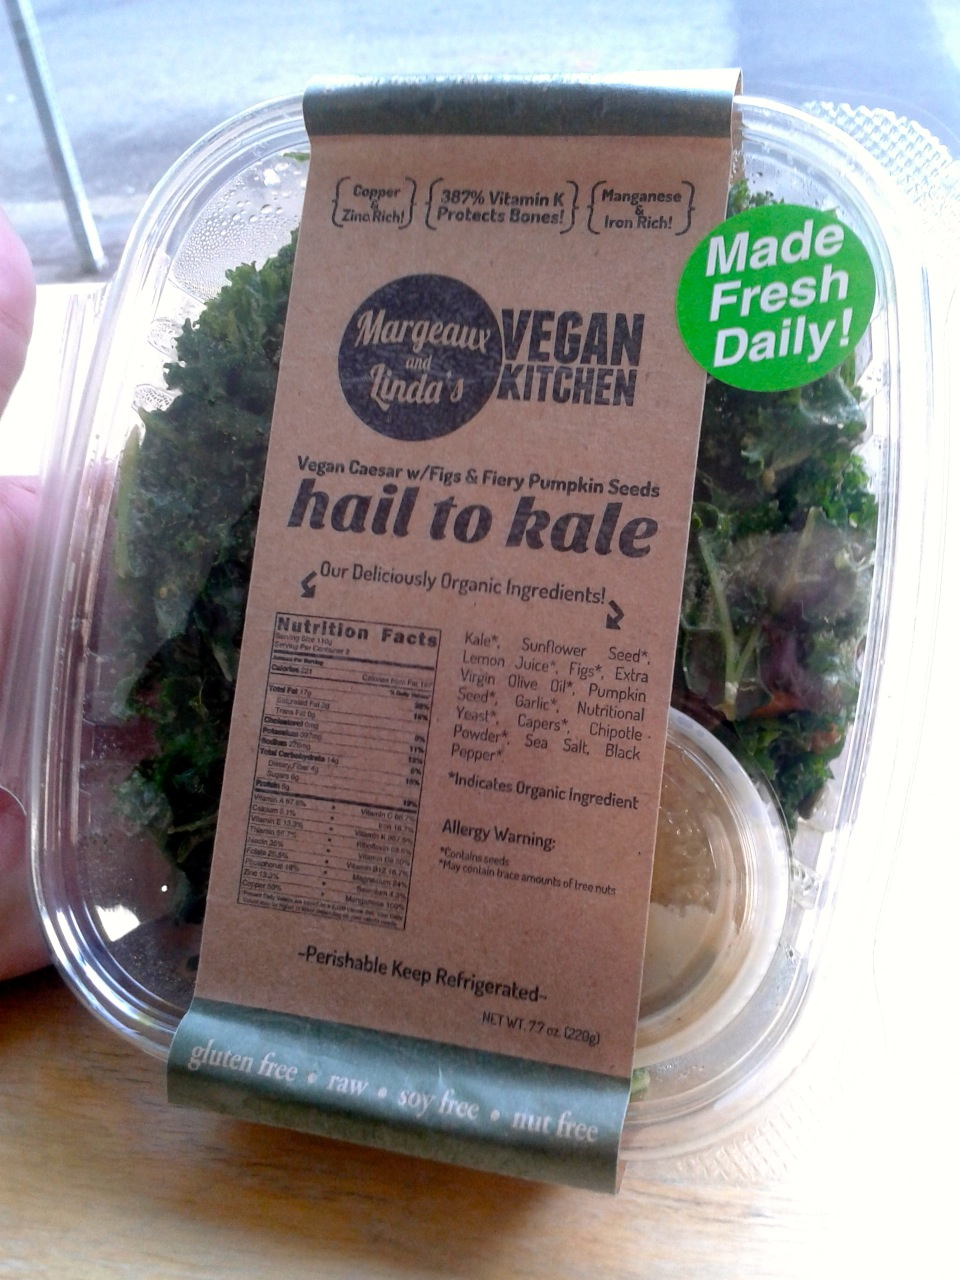 https://i2.wp.com/fatgayvegan.com/wp-content/uploads/2014/05/kale.jpg?fit=960%2C1280